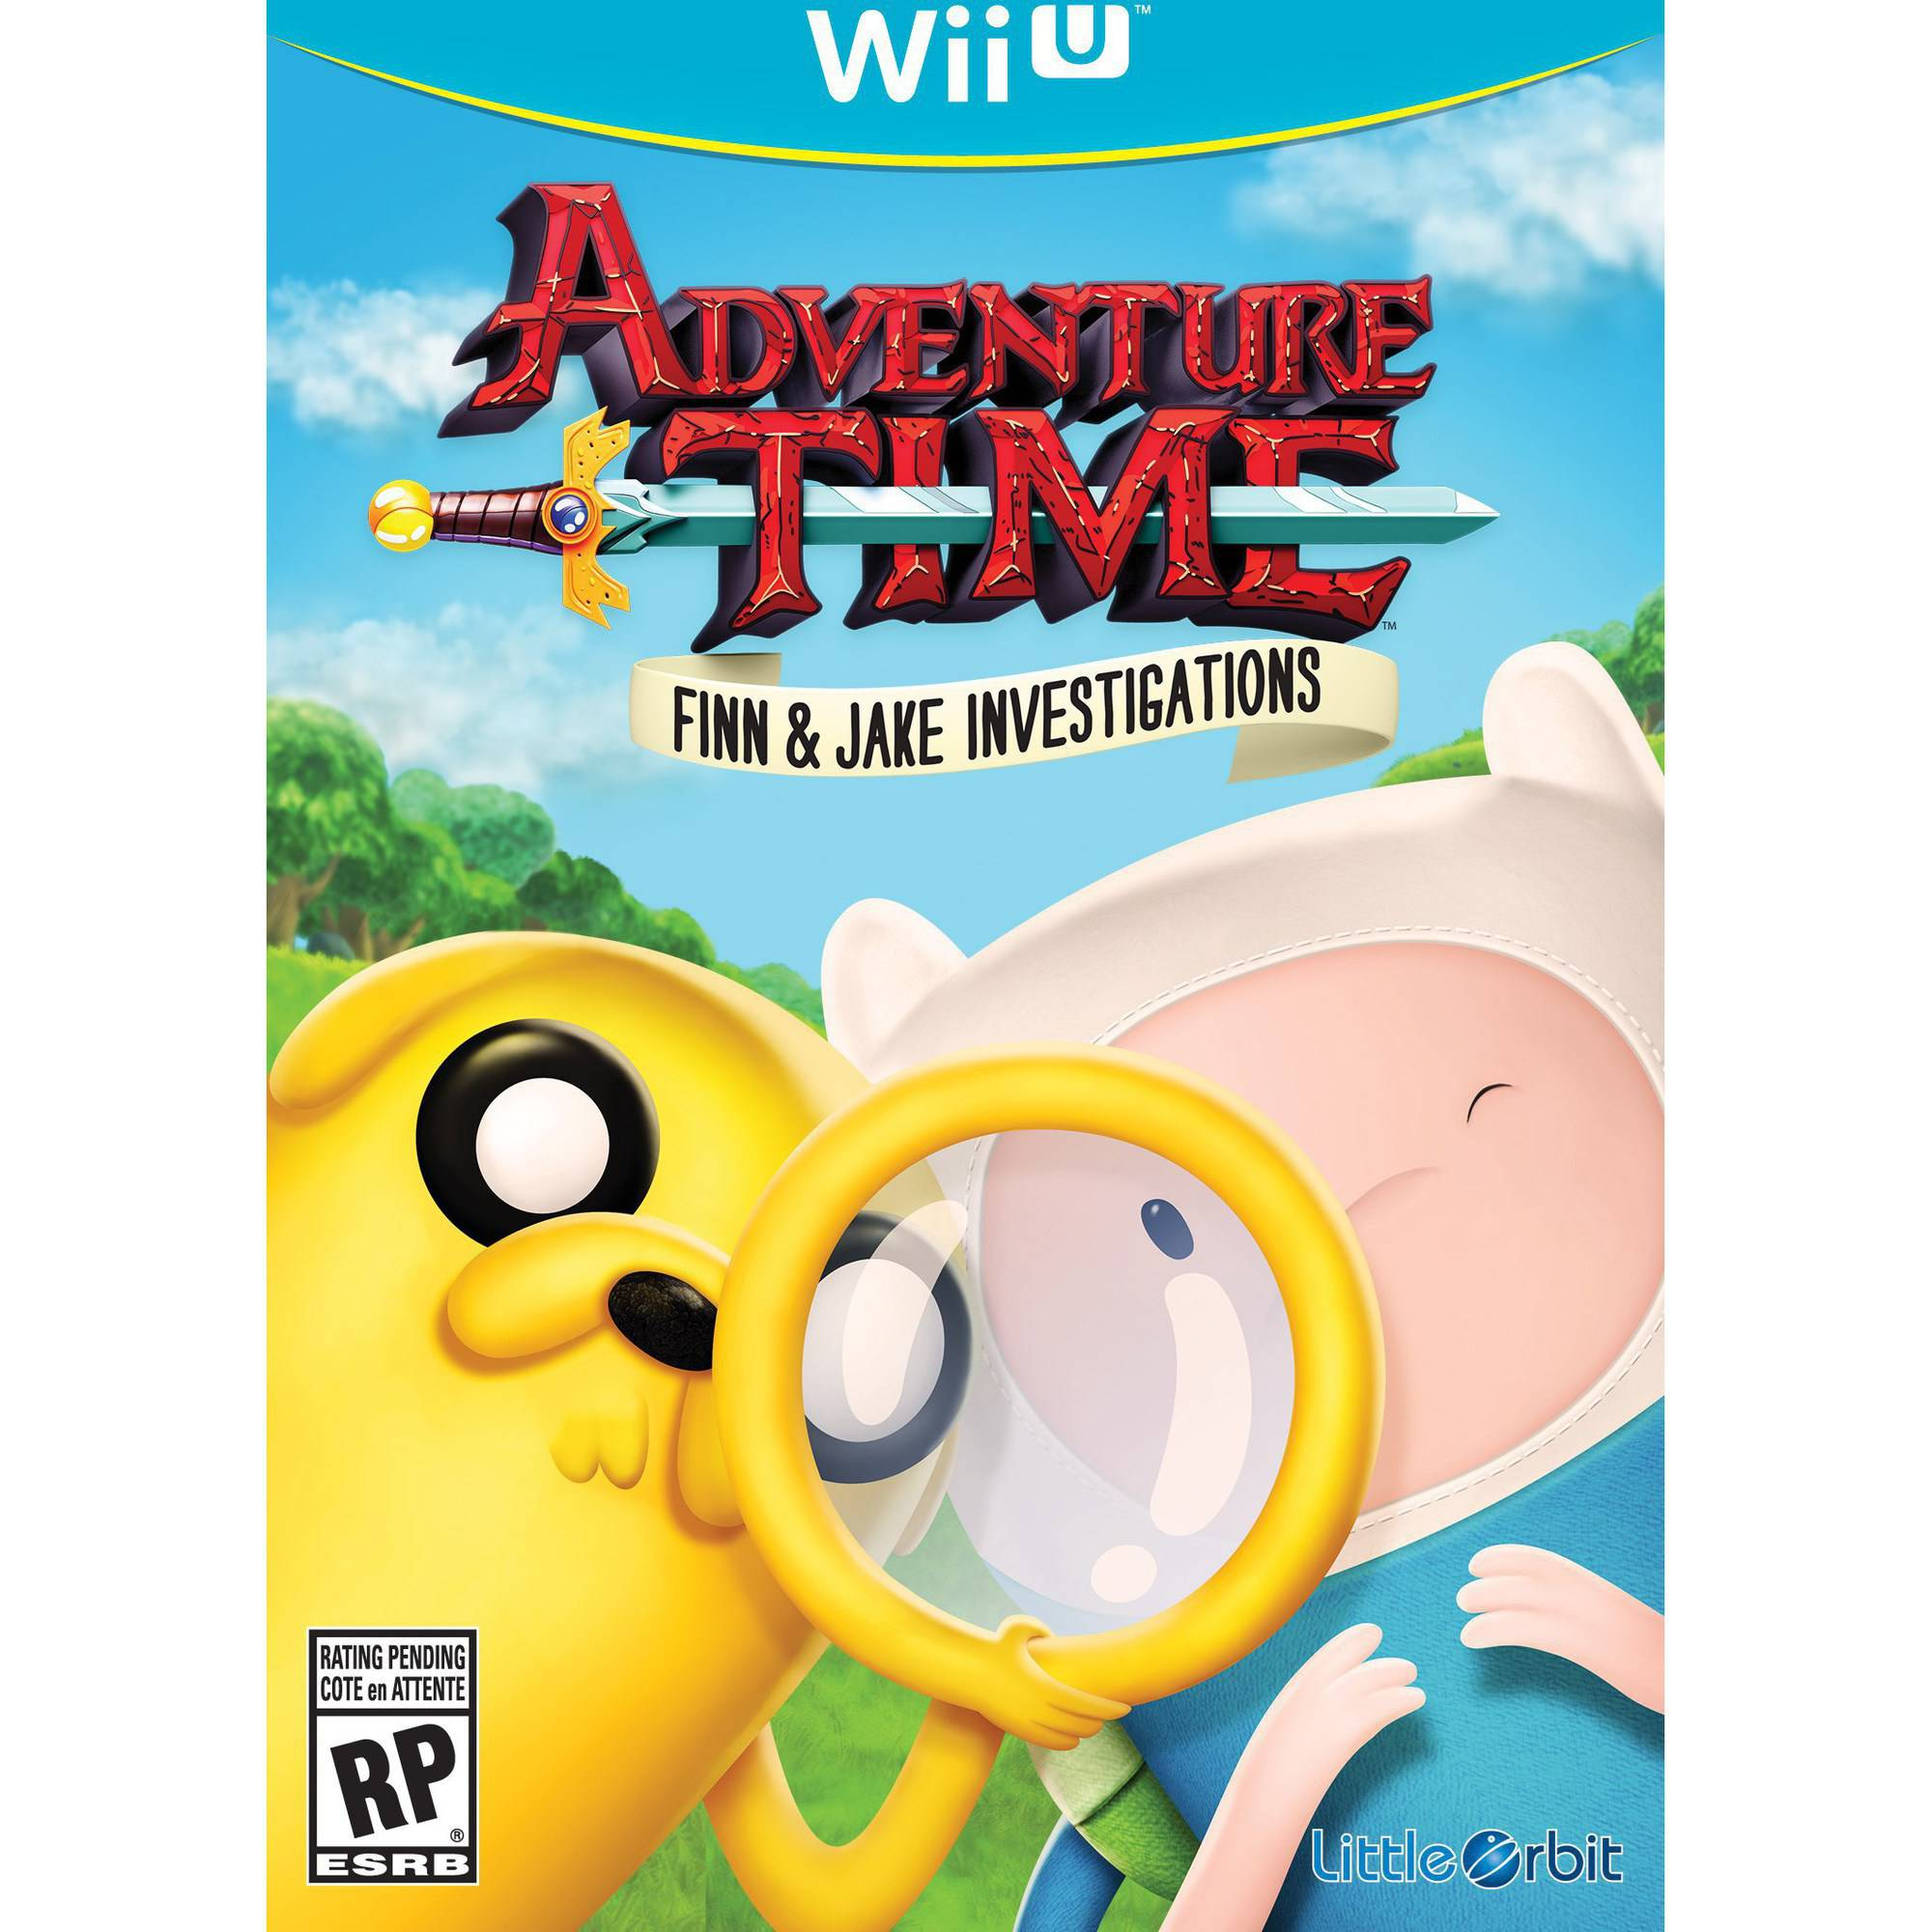 Adventure Time Finn And Jake Investigations (Little Orbit)